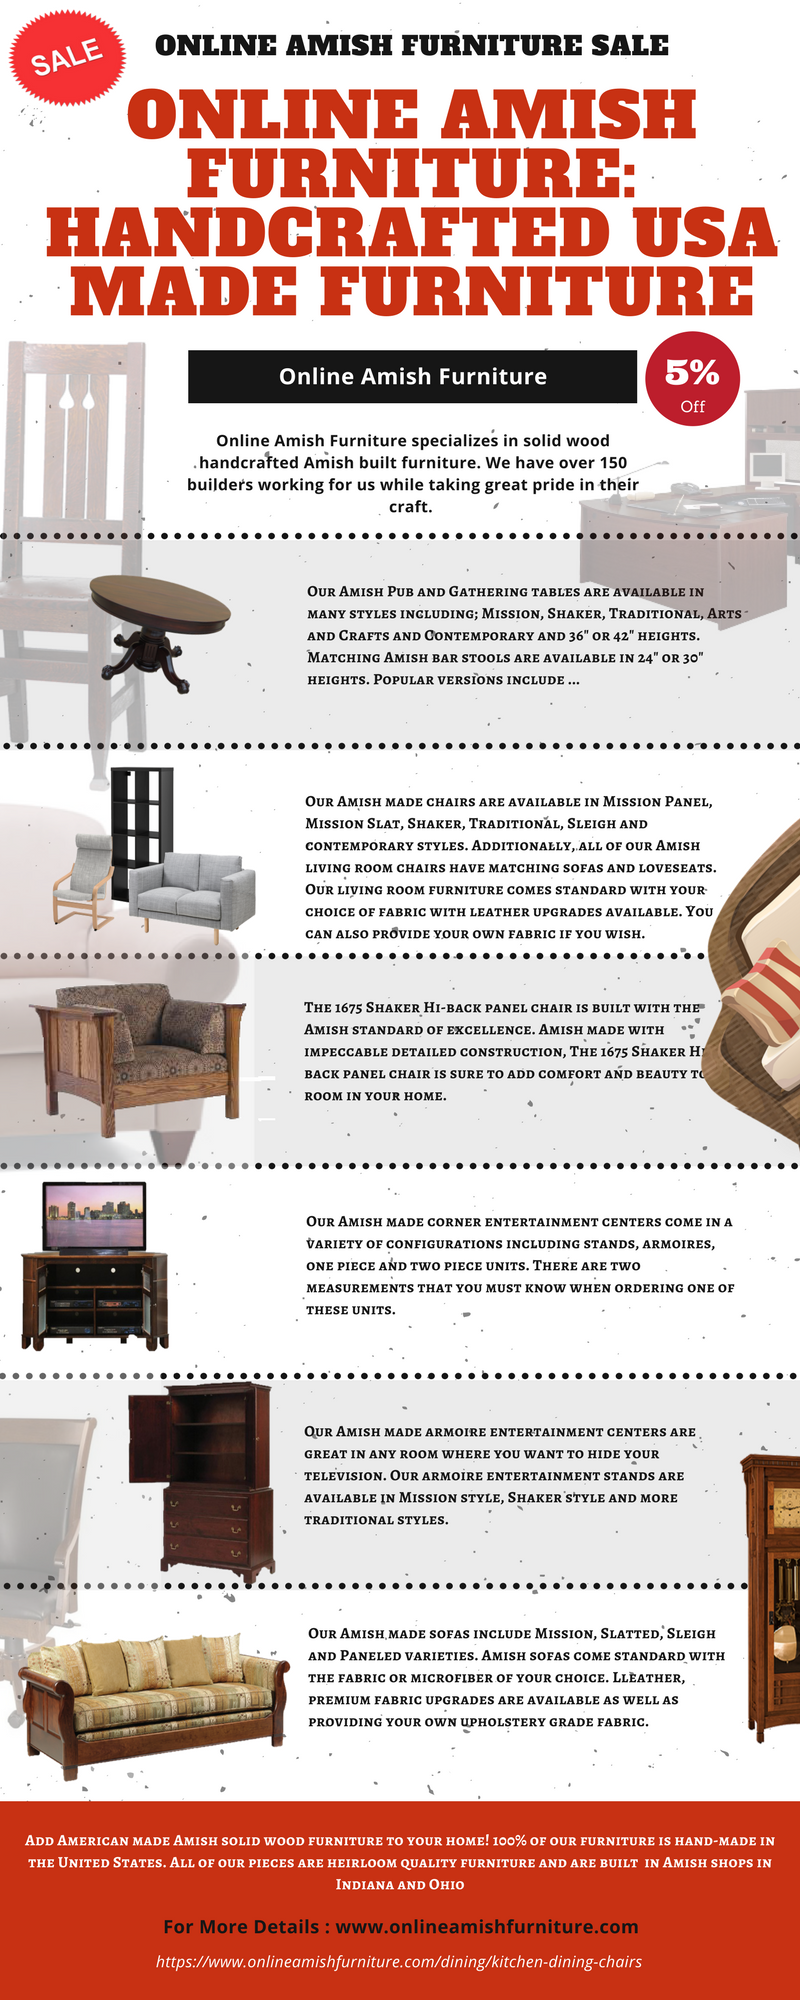 kings amish furniture stores in lancaster pa online amish